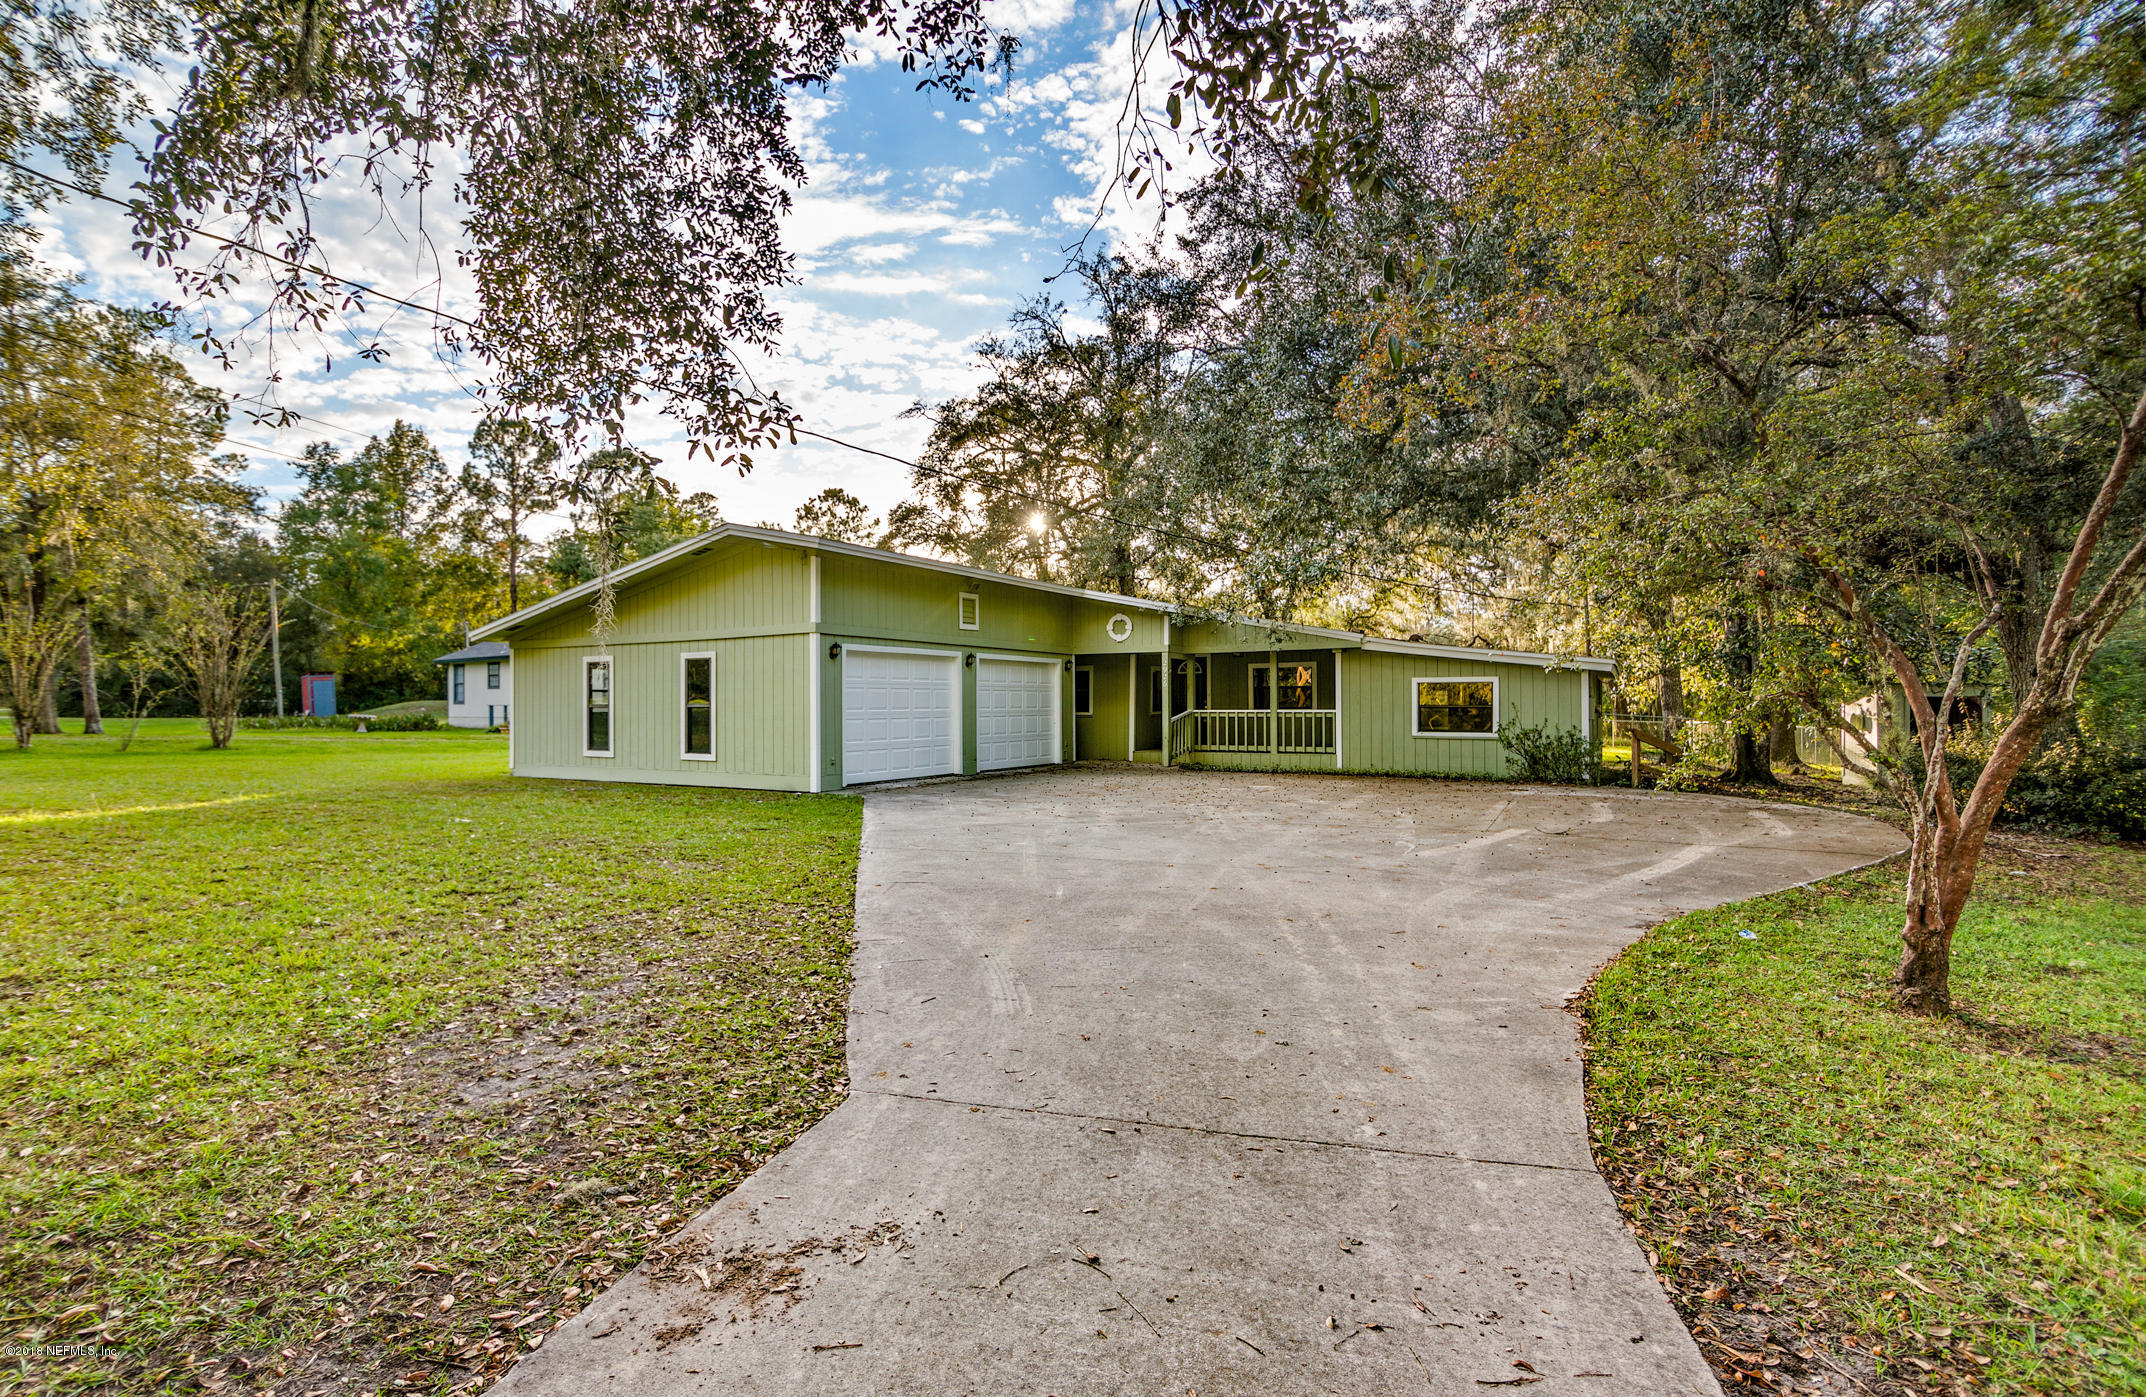 2926 BLACK CREEK, MIDDLEBURG, FLORIDA 32068, 3 Bedrooms Bedrooms, ,2 BathroomsBathrooms,Residential - single family,For sale,BLACK CREEK,967372